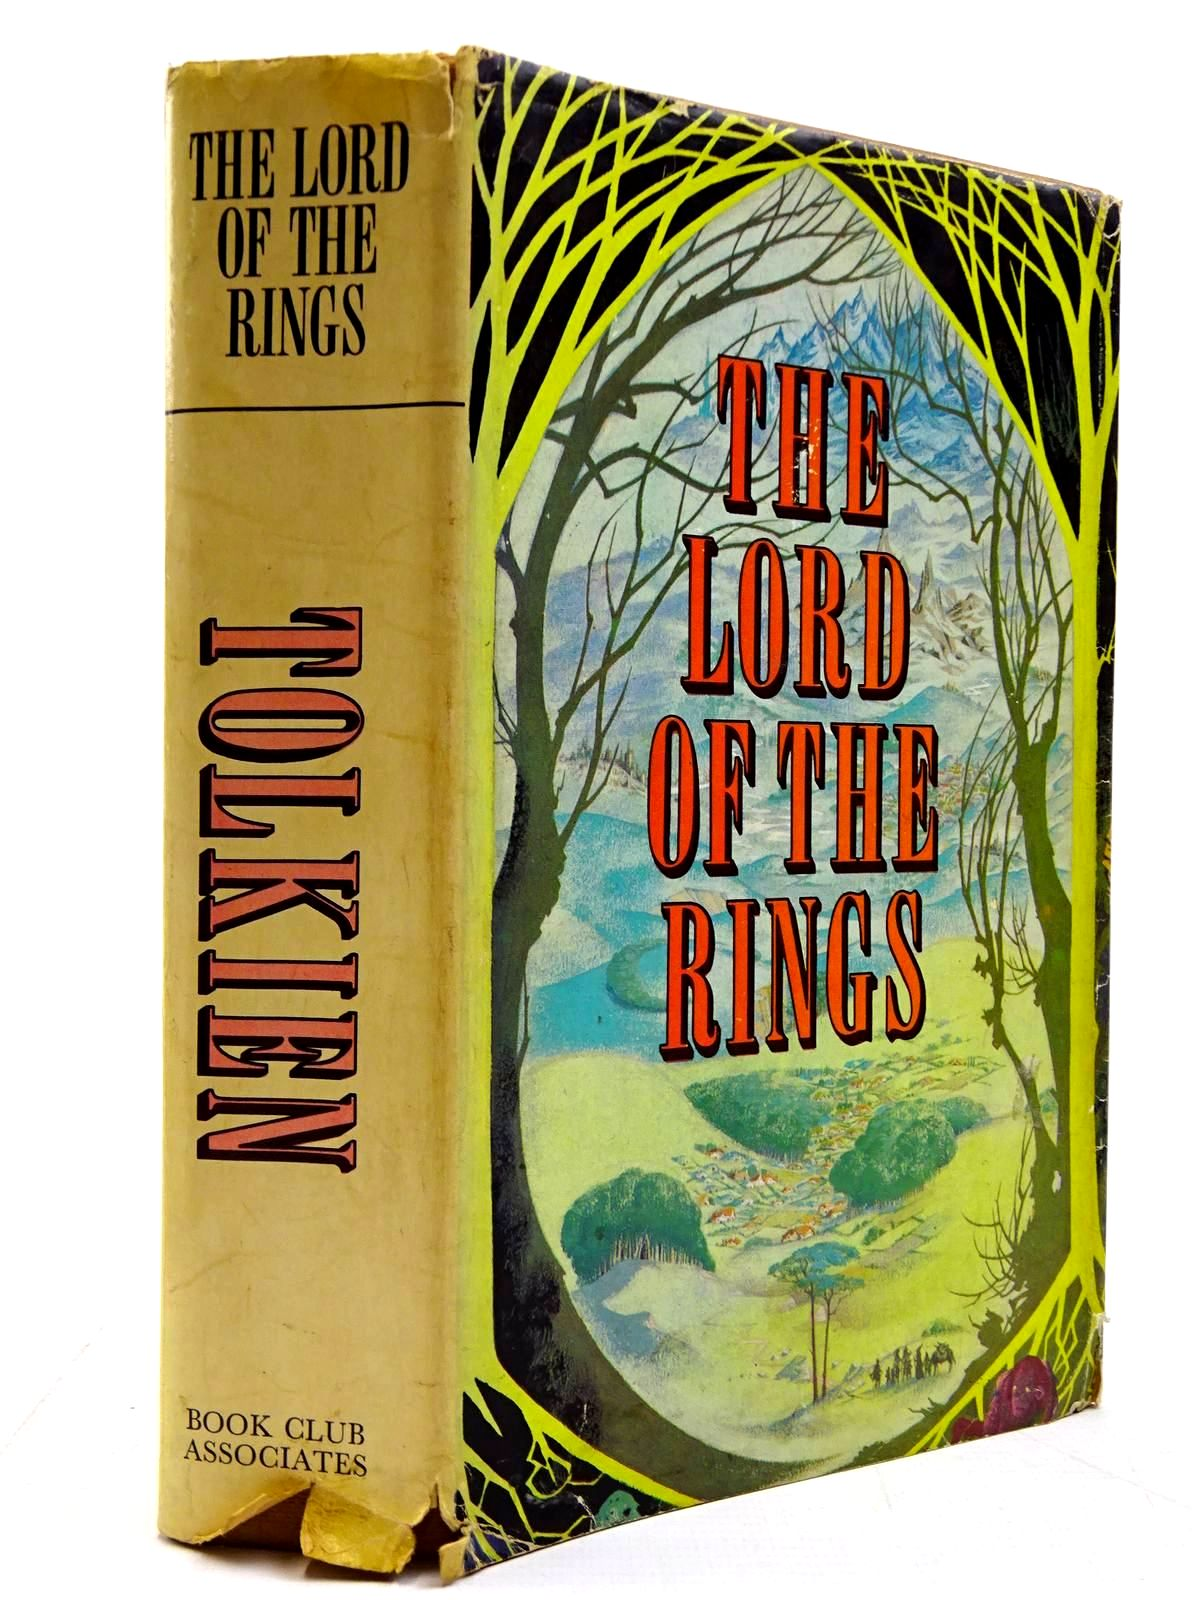 Photo of THE LORD OF THE RINGS written by Tolkien, J.R.R. published by Book Club Associates (STOCK CODE: 2130847)  for sale by Stella & Rose's Books